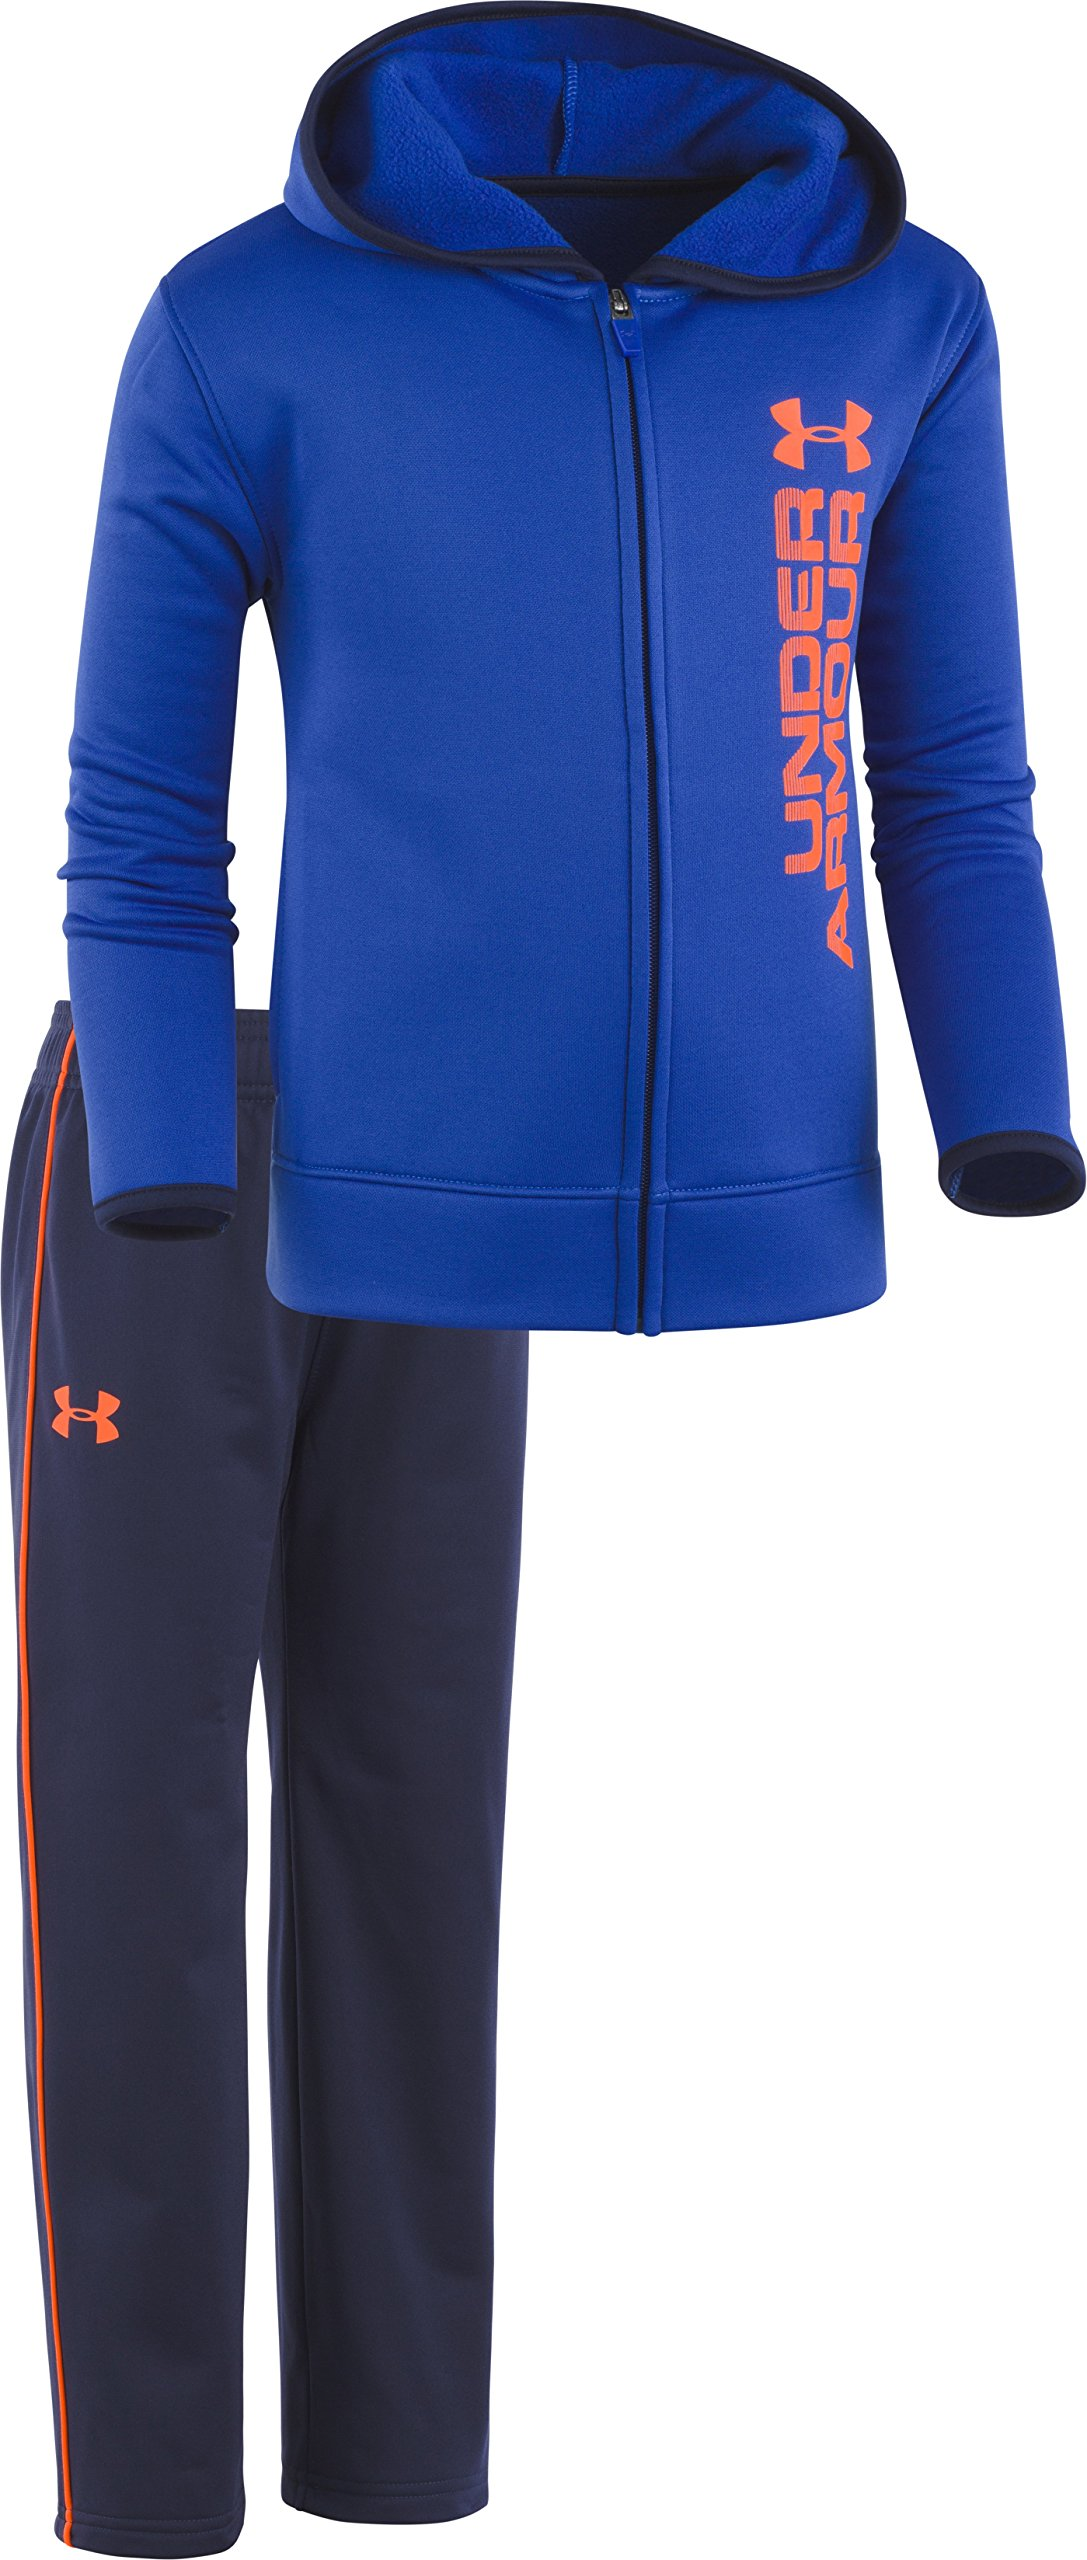 Under Armour Boys' Little Active Hoodie and Pant Set, Royal Blue, 5